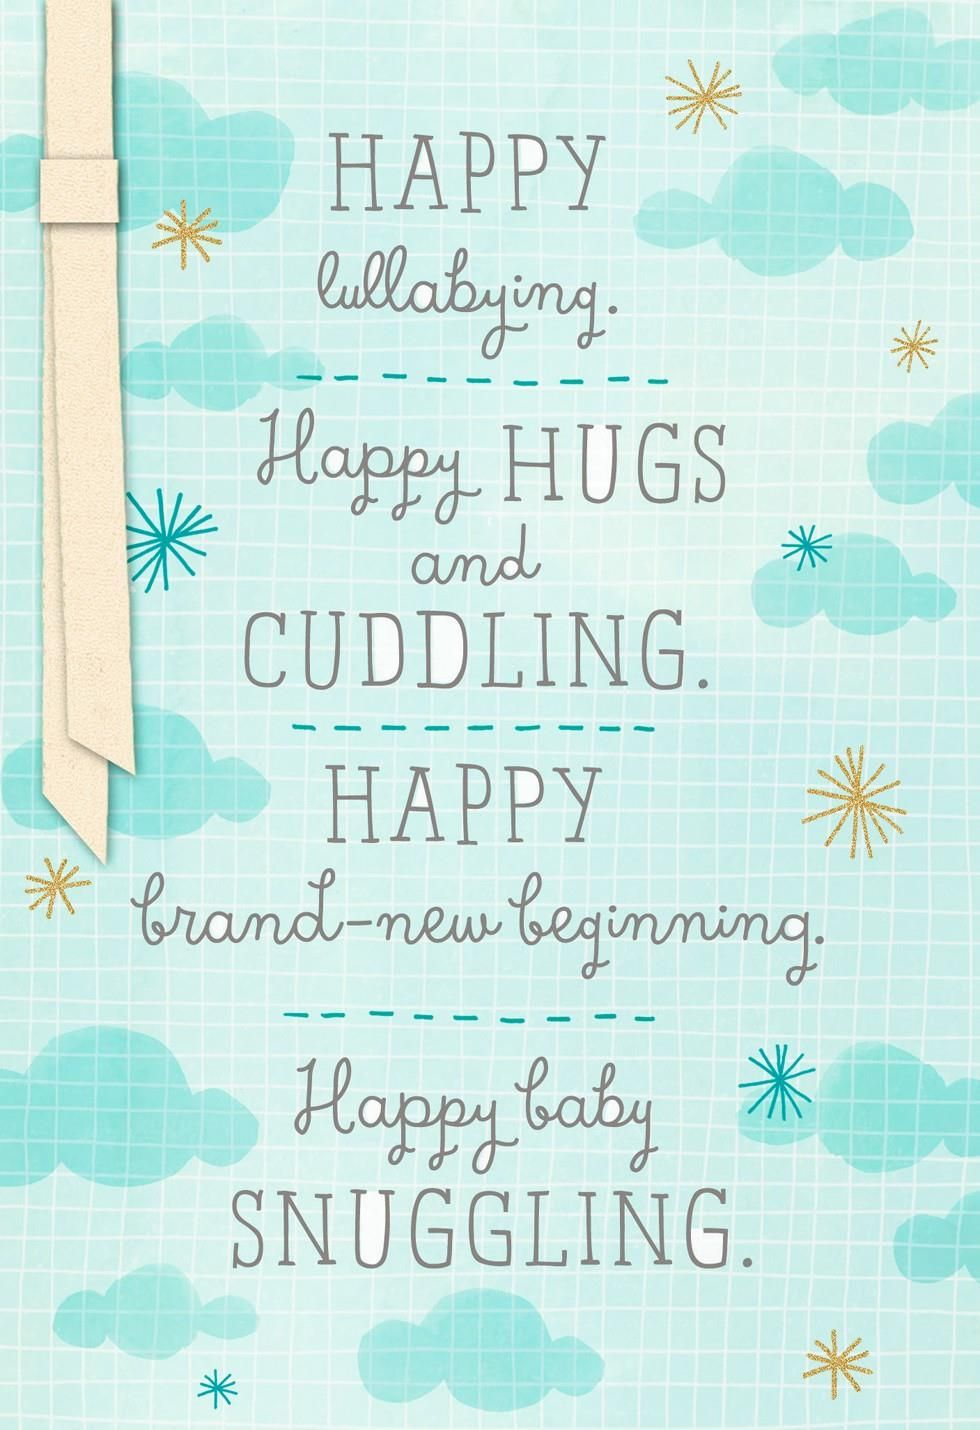 Riveting A New Baby Boy Congratulations On Your New Baby Hebrew Congratulations On Your New Baby Wishes Congratulation Congratulation baby shower Congratulations On Your New Baby